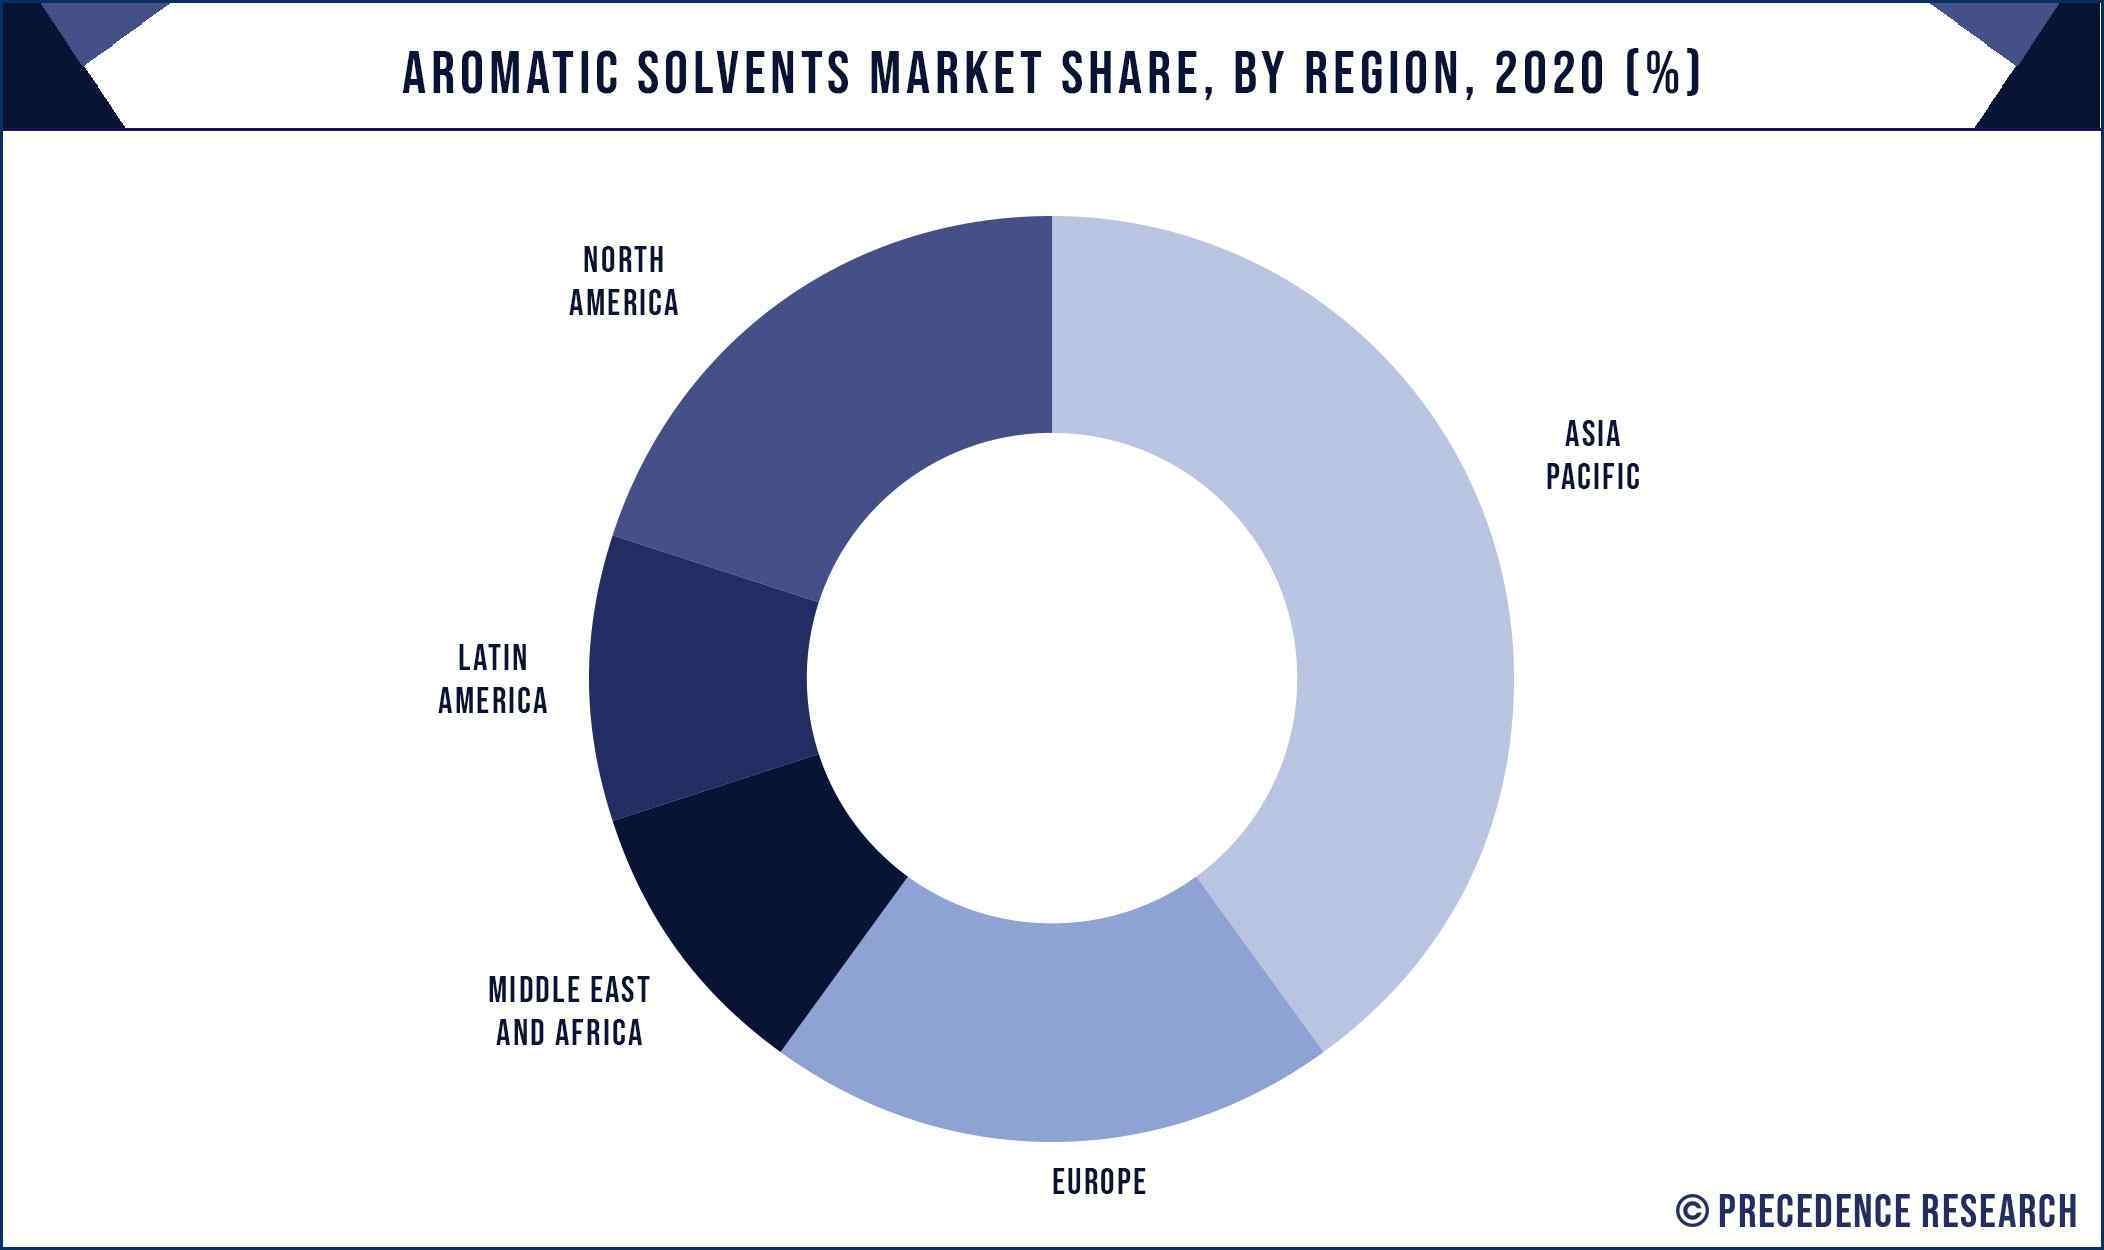 Aromatic Solvents Market Share, By Region, 2020 (%)